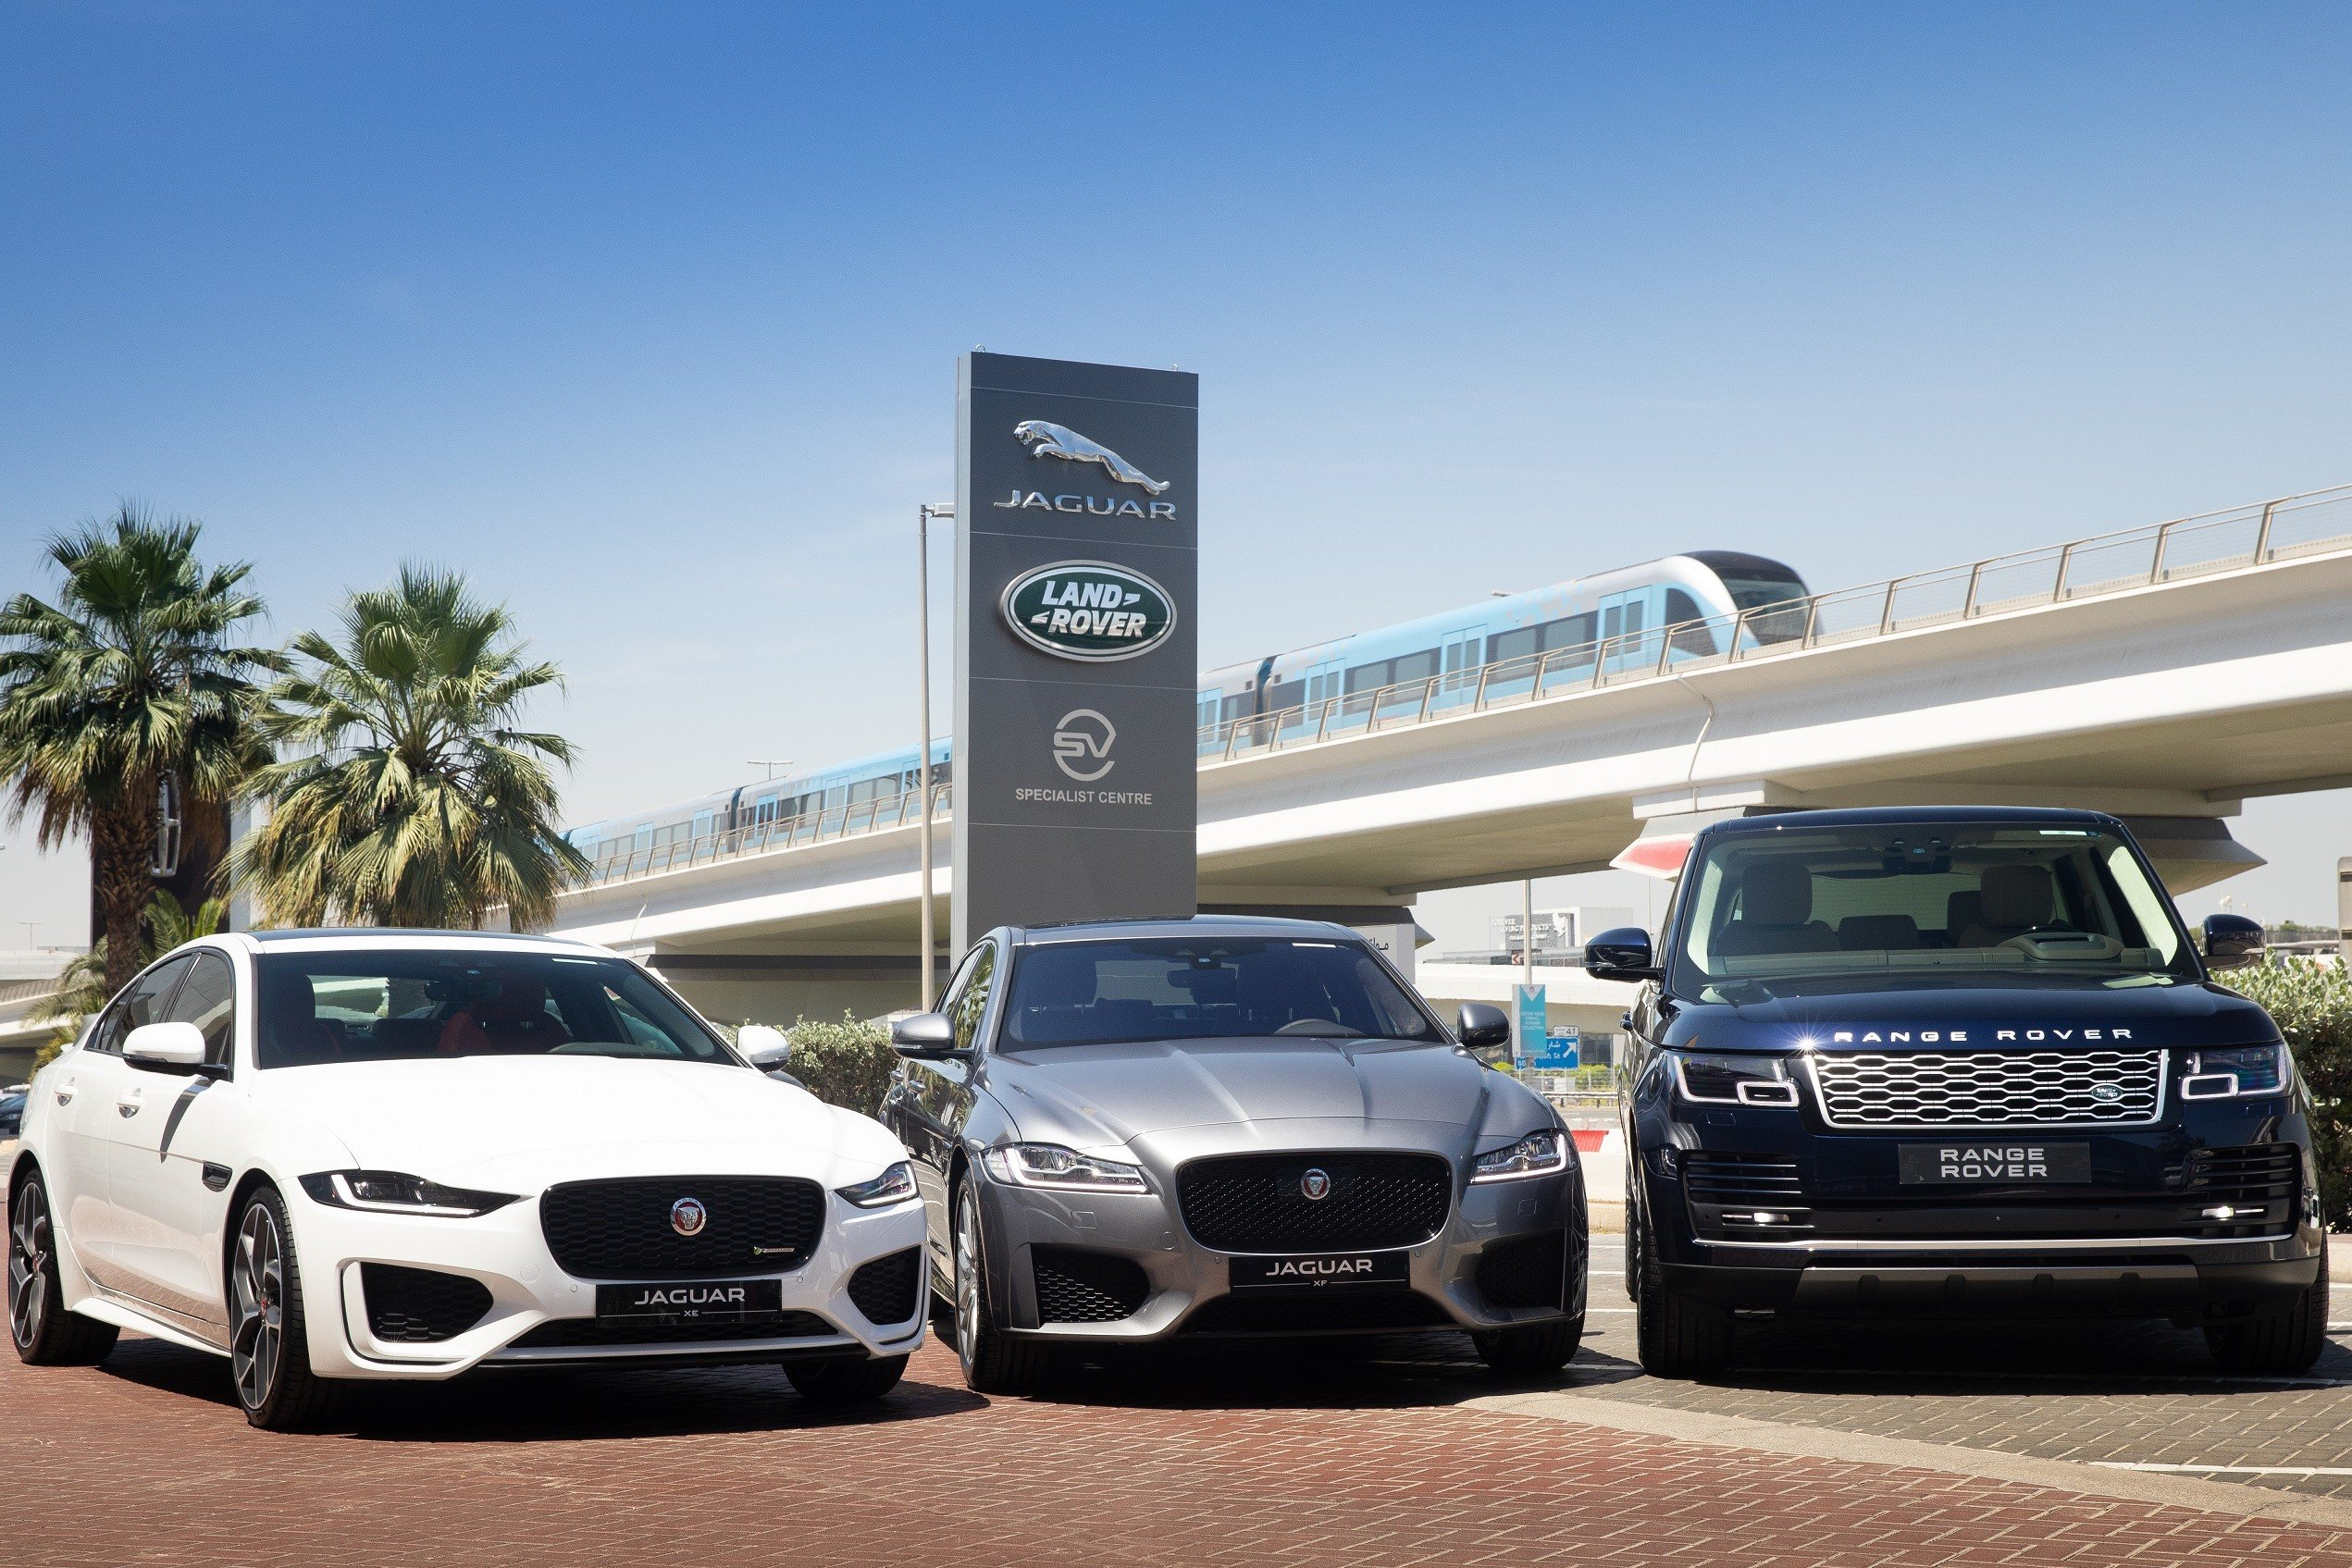 Special Edition of Jaguar XE, XF and Range Rover Vogue vehicles are available at Al Tayer Motors and Premier Motors showrooms in the UAE for a limited time